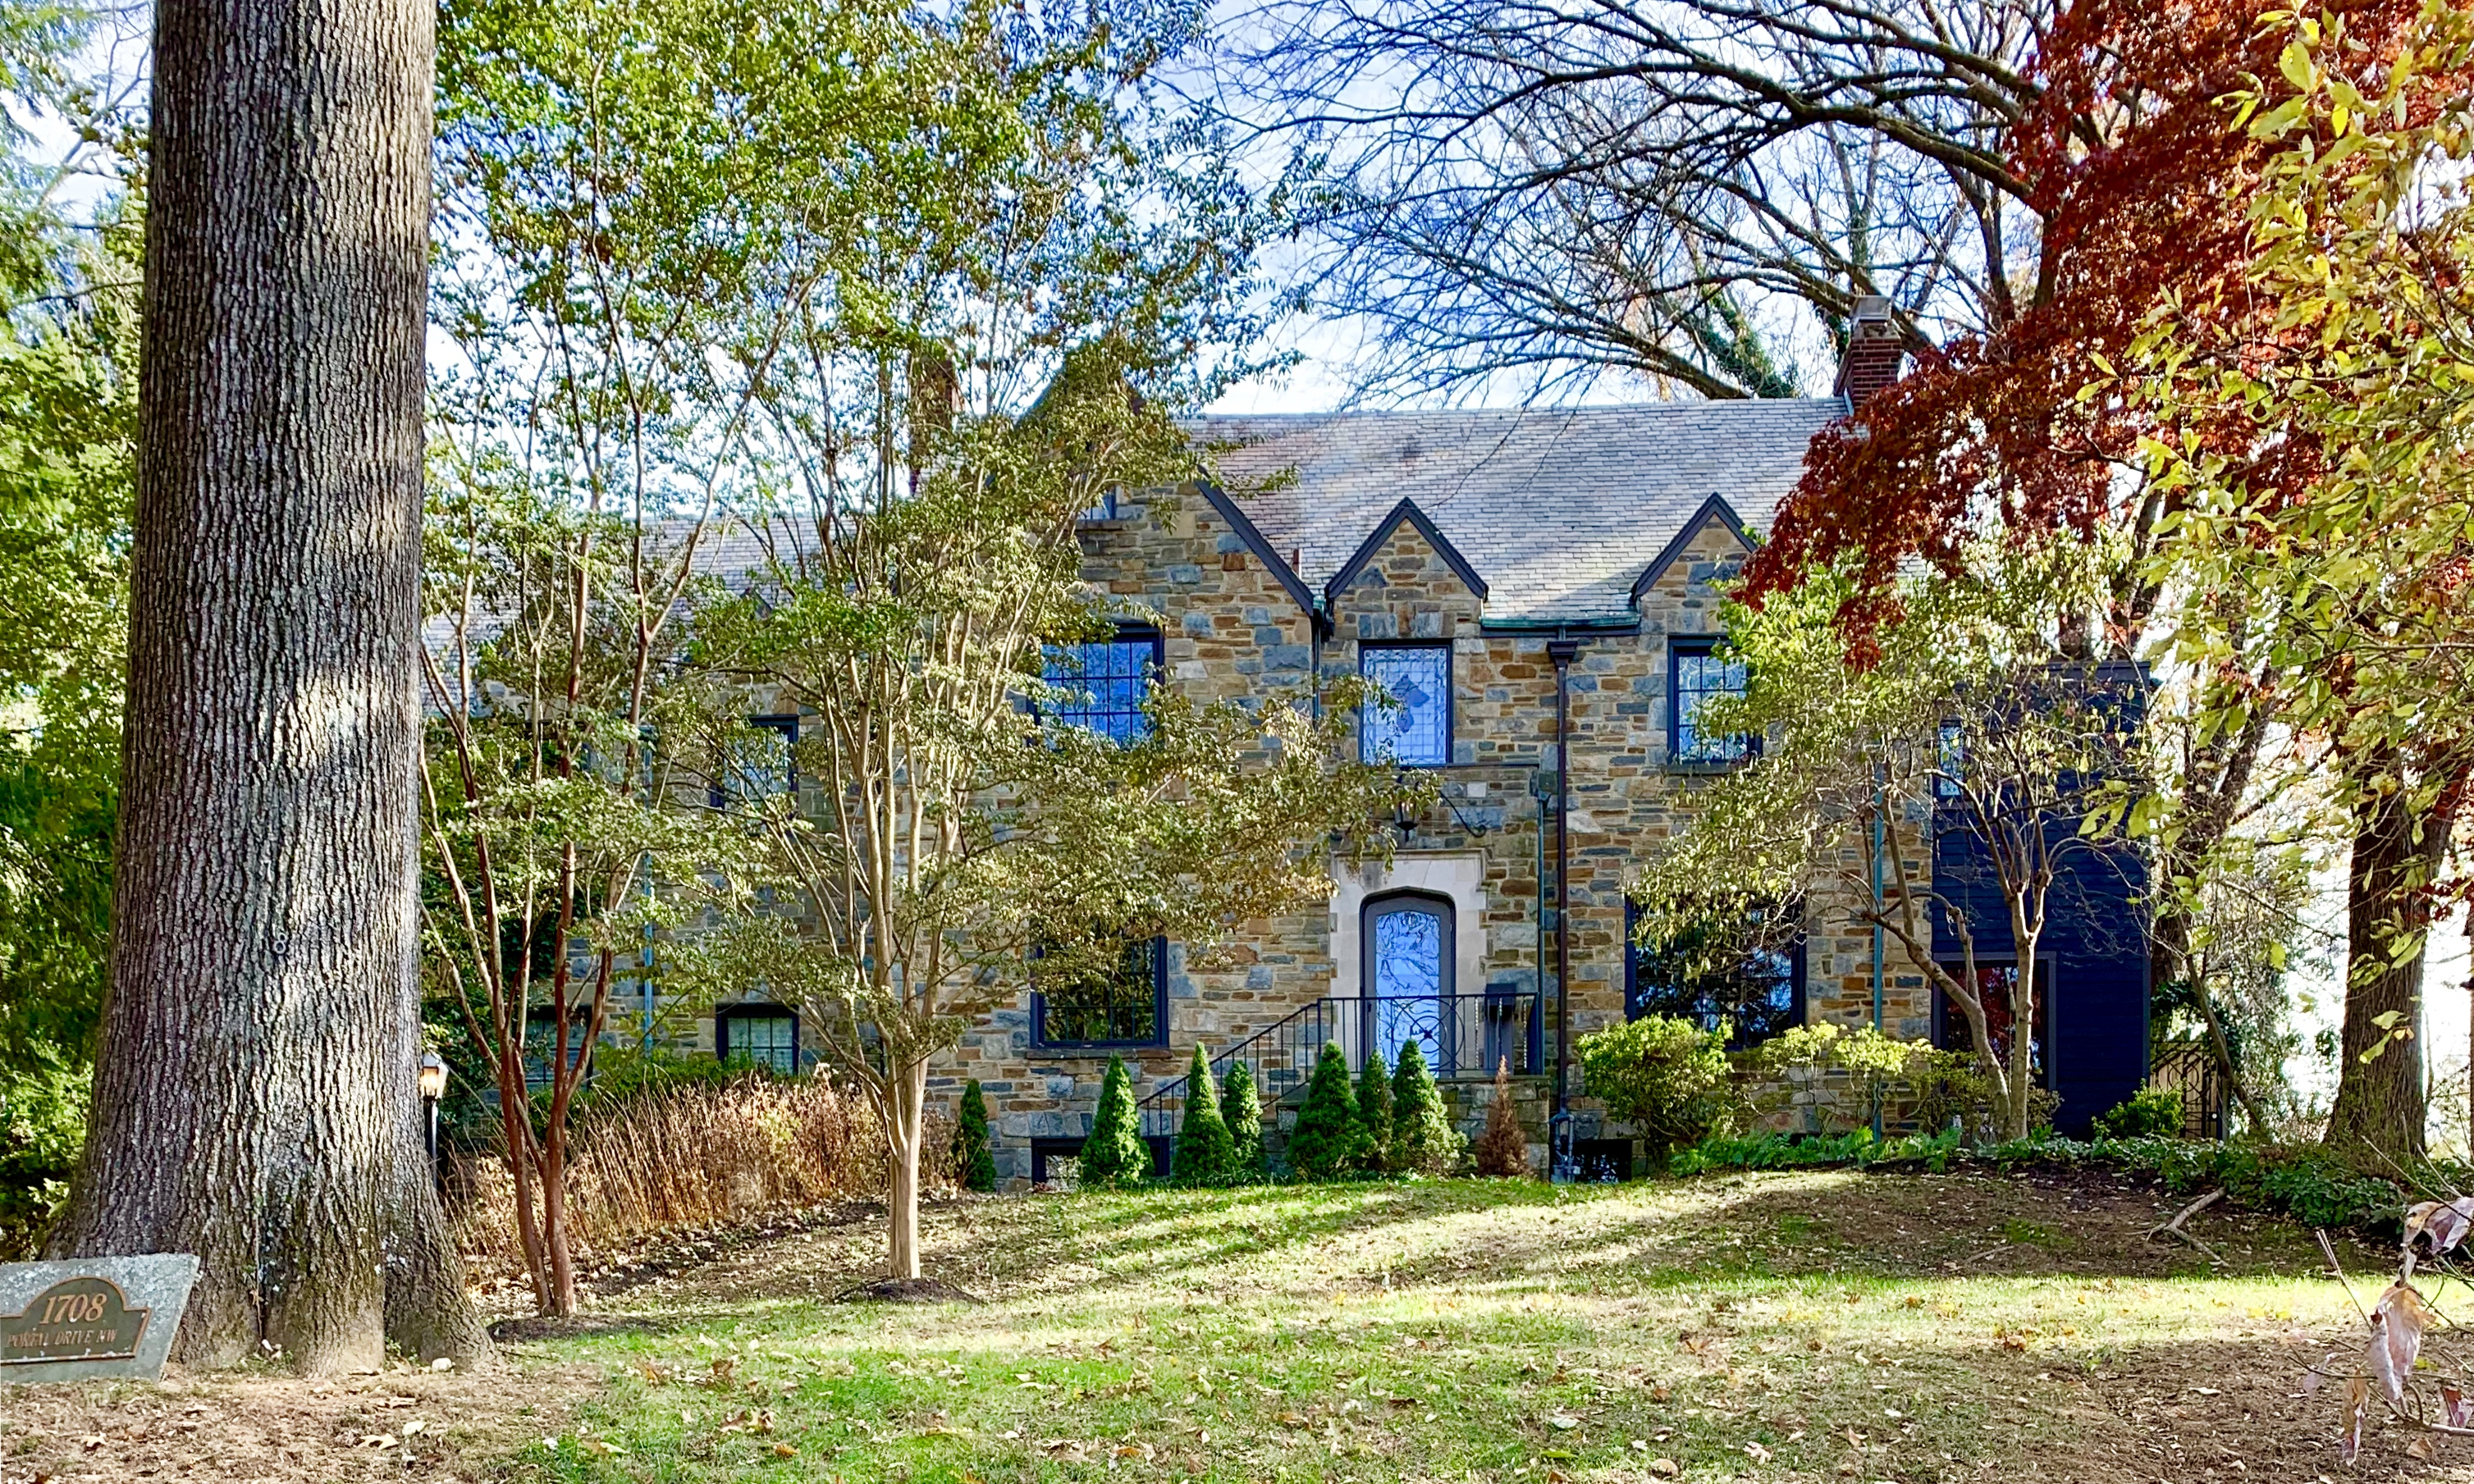 Washington, DC Detached Homes For Sale. Portal Dr in Colonial Village. Art Shmatko Luxury Real Estate Agent